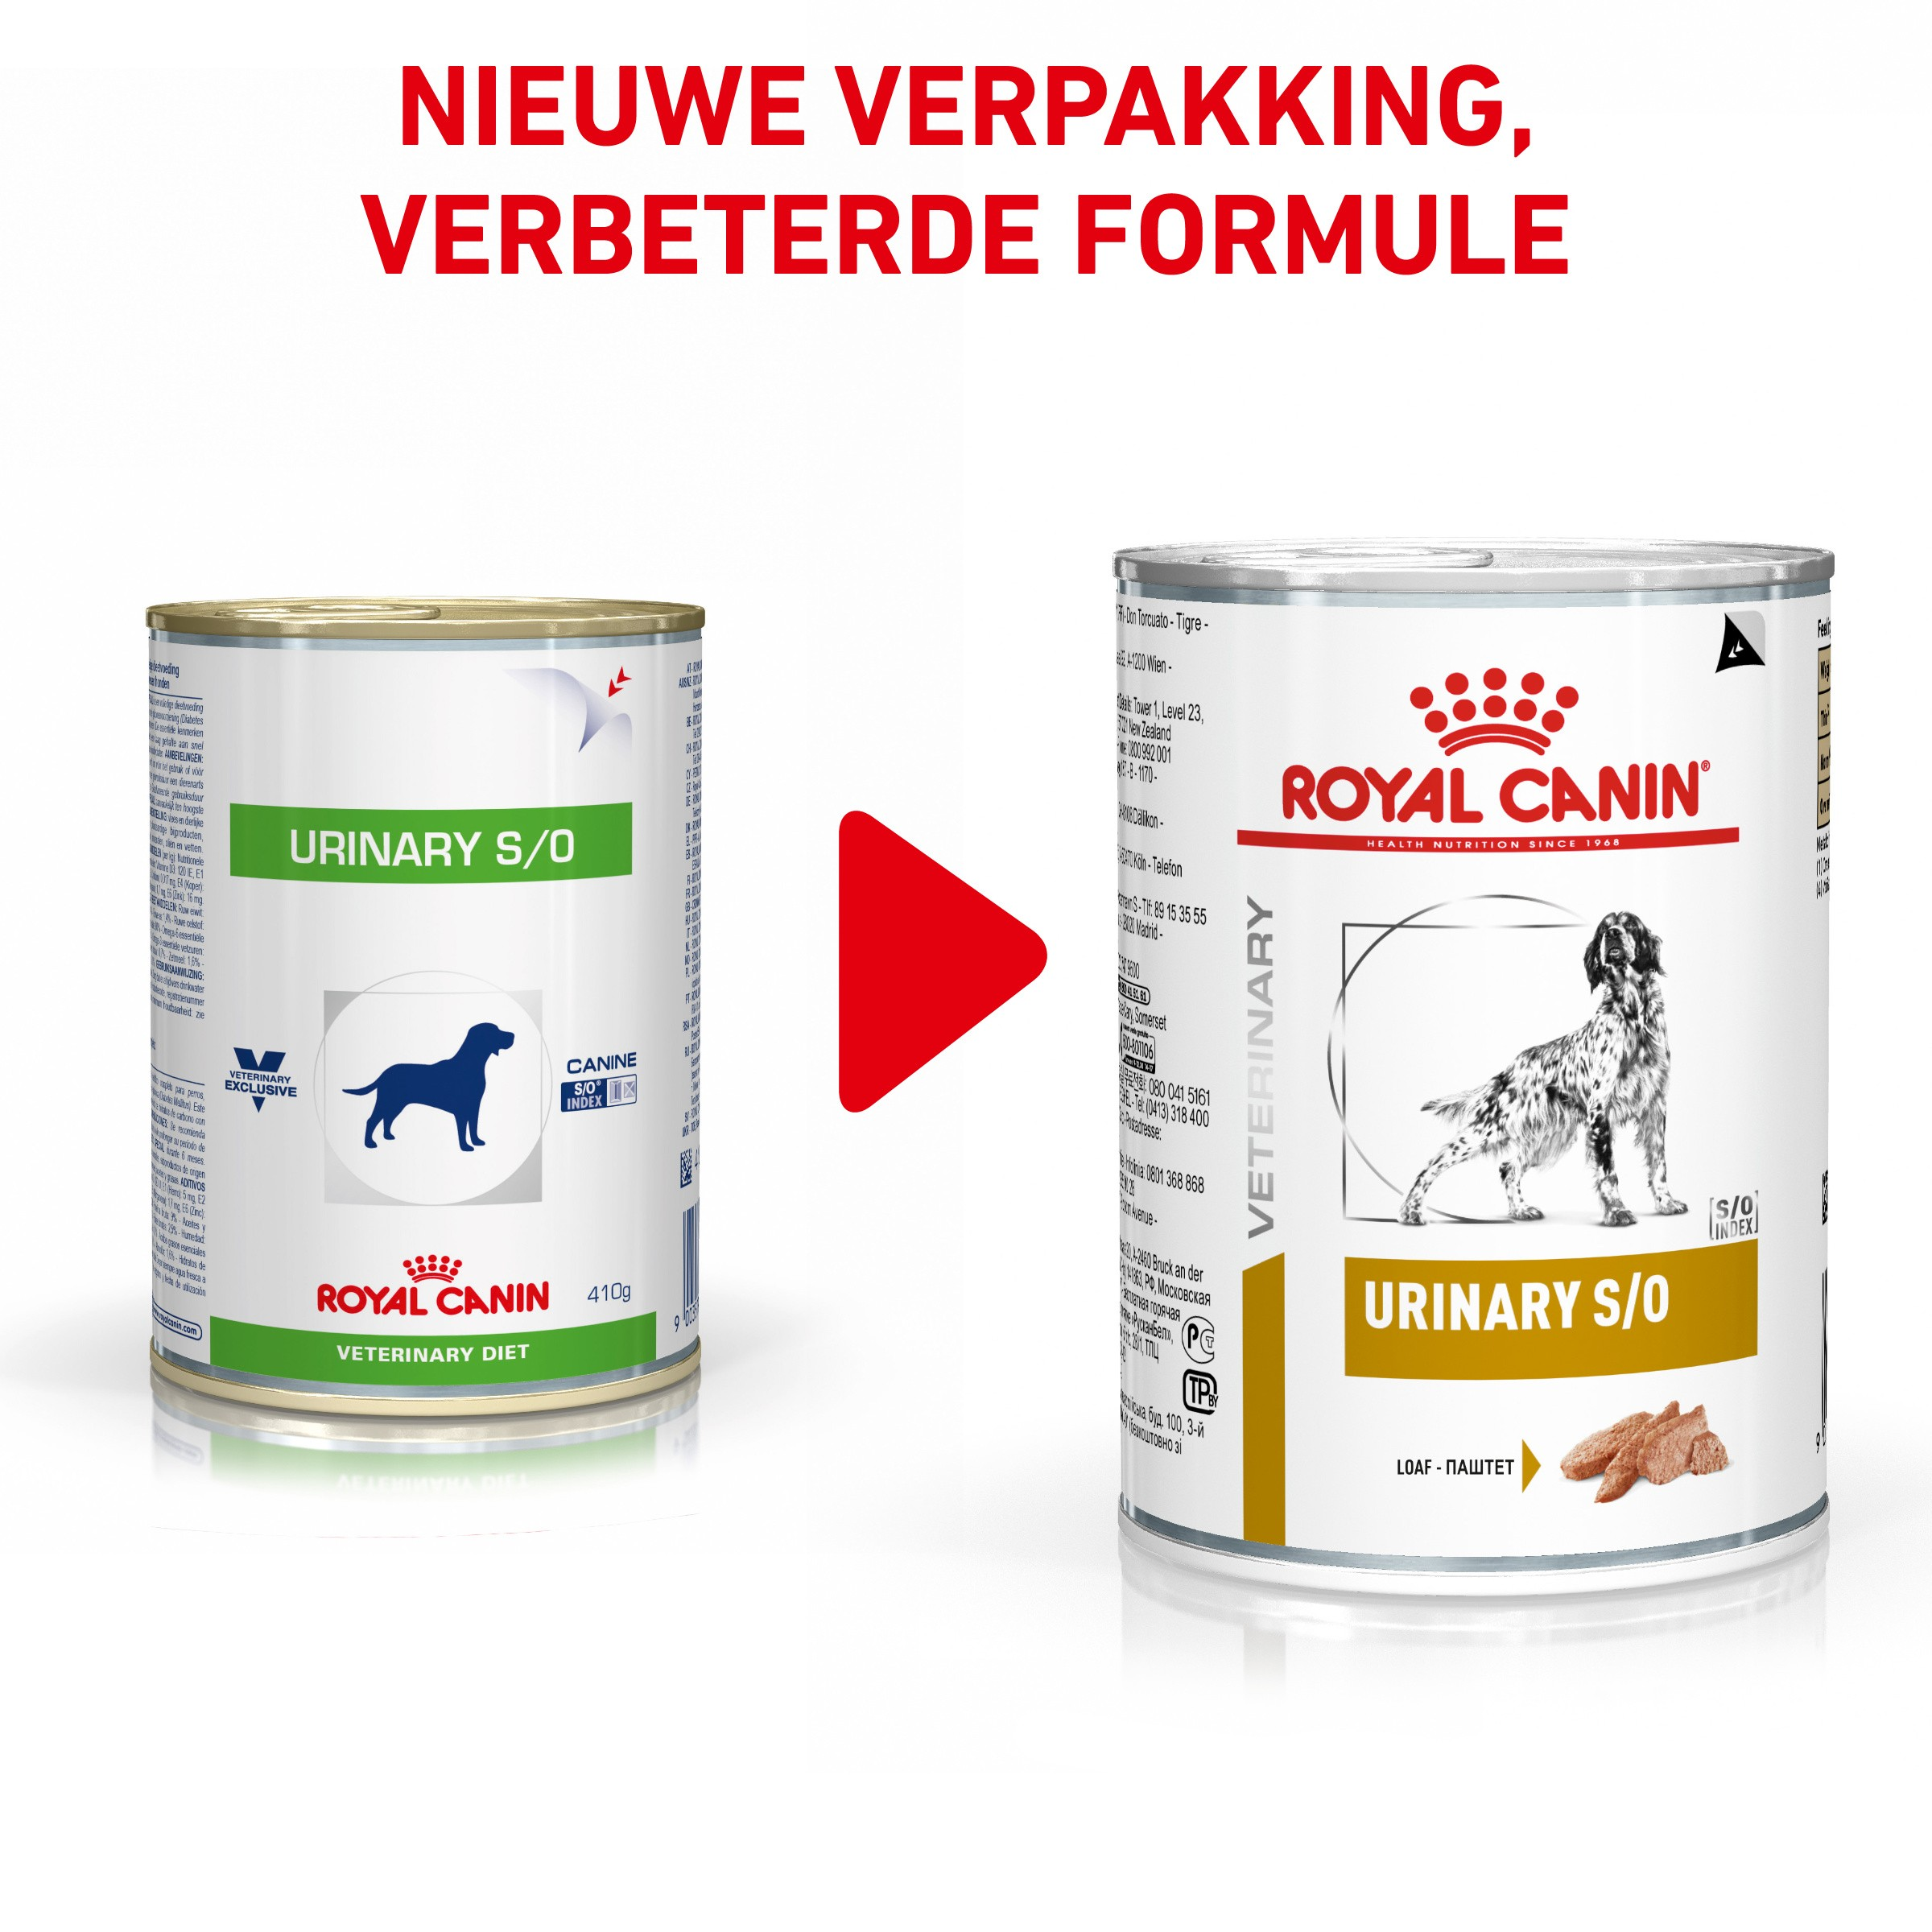 Royal Canin Veterinary Urinary S/O 410 gram blik hondenvoer